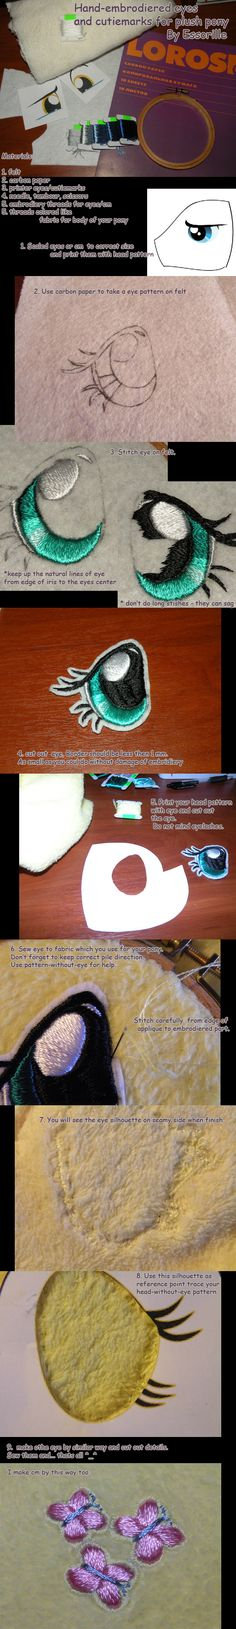 hand-embroidered eyes tutorial by ~Essorille on deviantART